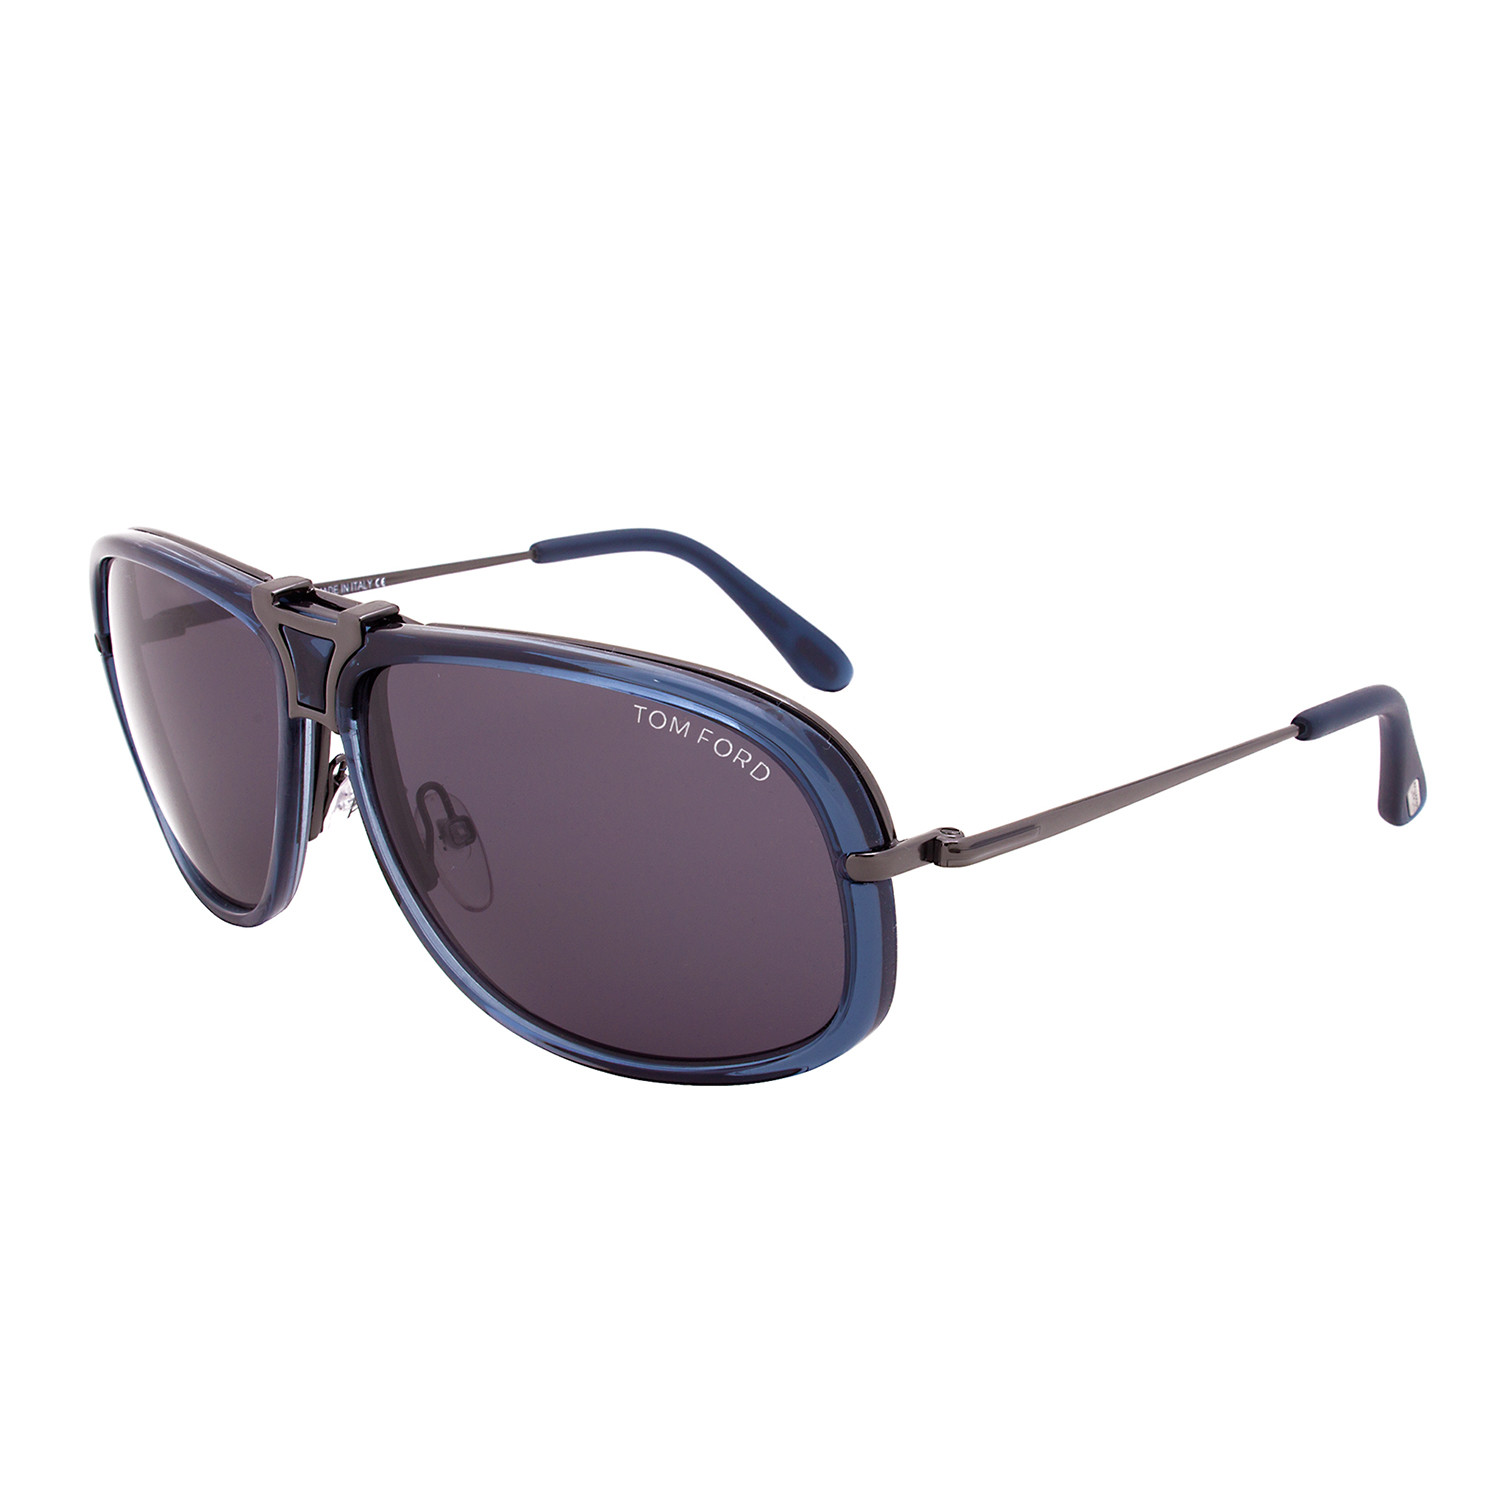 6b6cf38e3419 Tom Ford    Robbie Sunglasses    FT0286 91A - Tom Ford - Touch of Modern